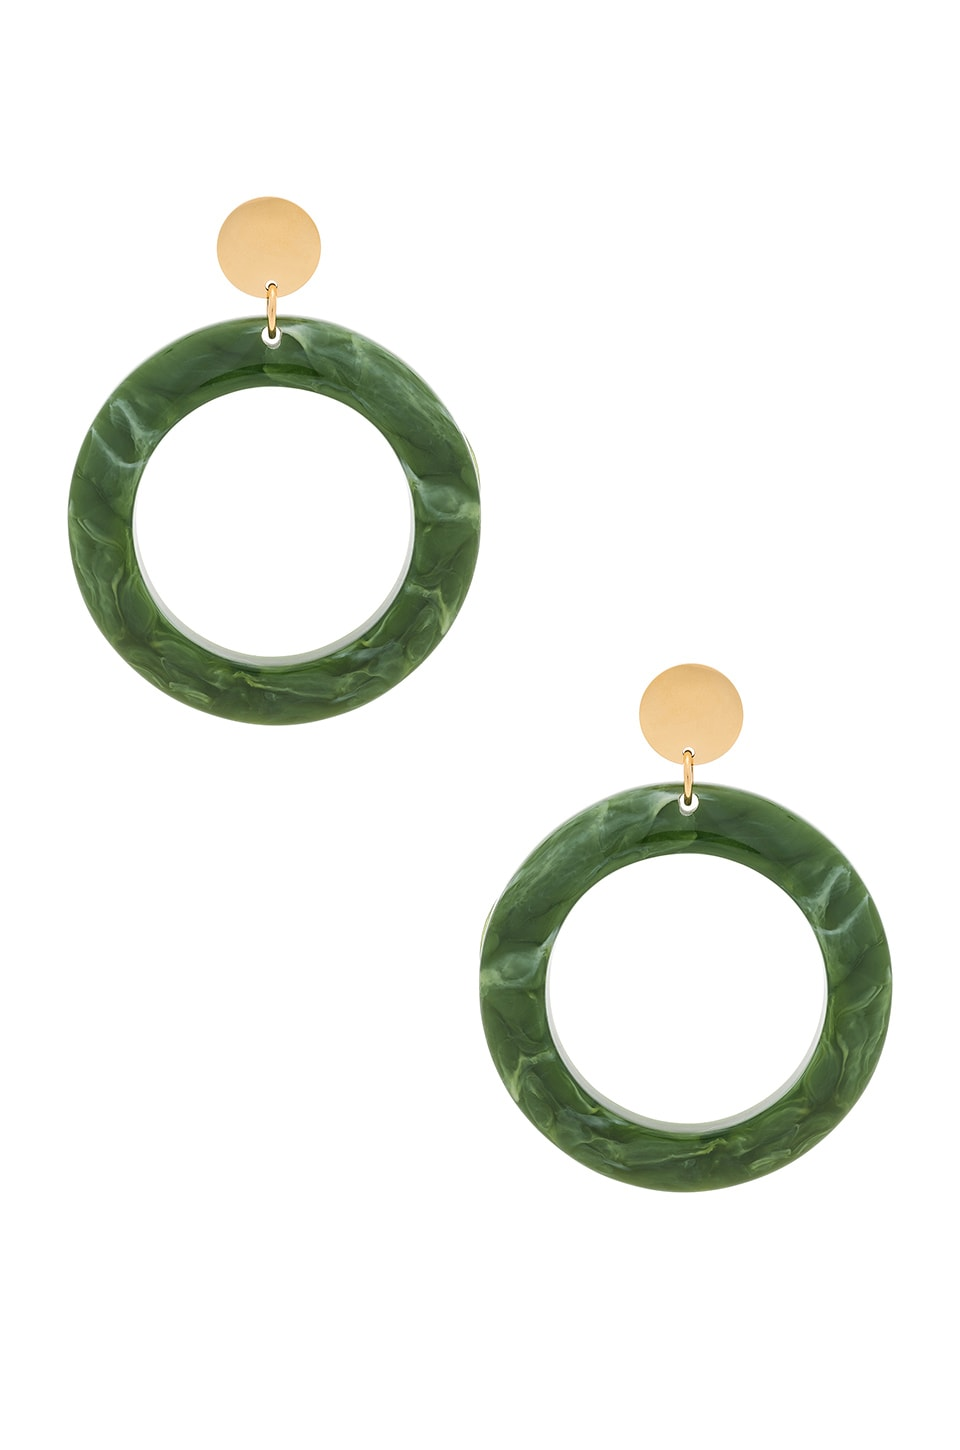 AMBER SCEATS Cairo Earrings in Green